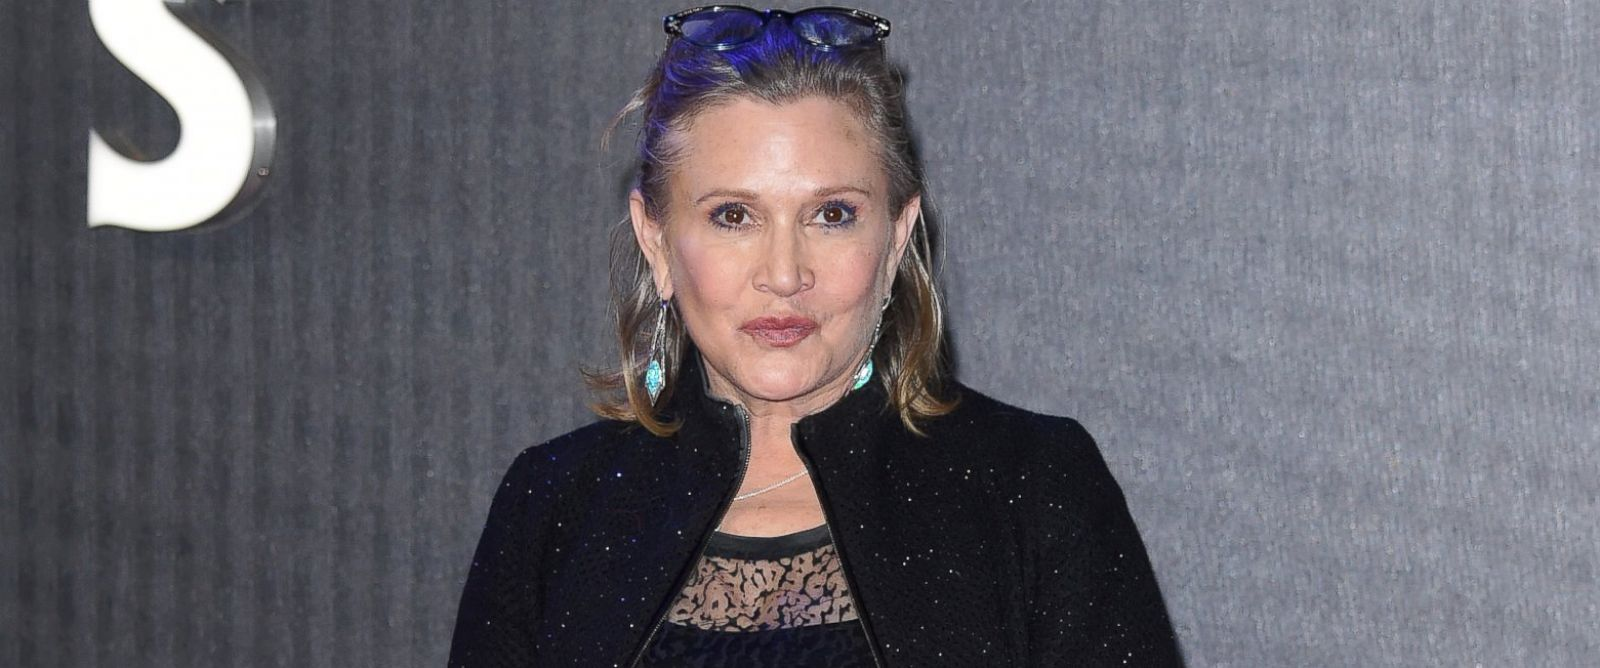 gty_carrie_fisher_jef_151229_12x5_1600_206425